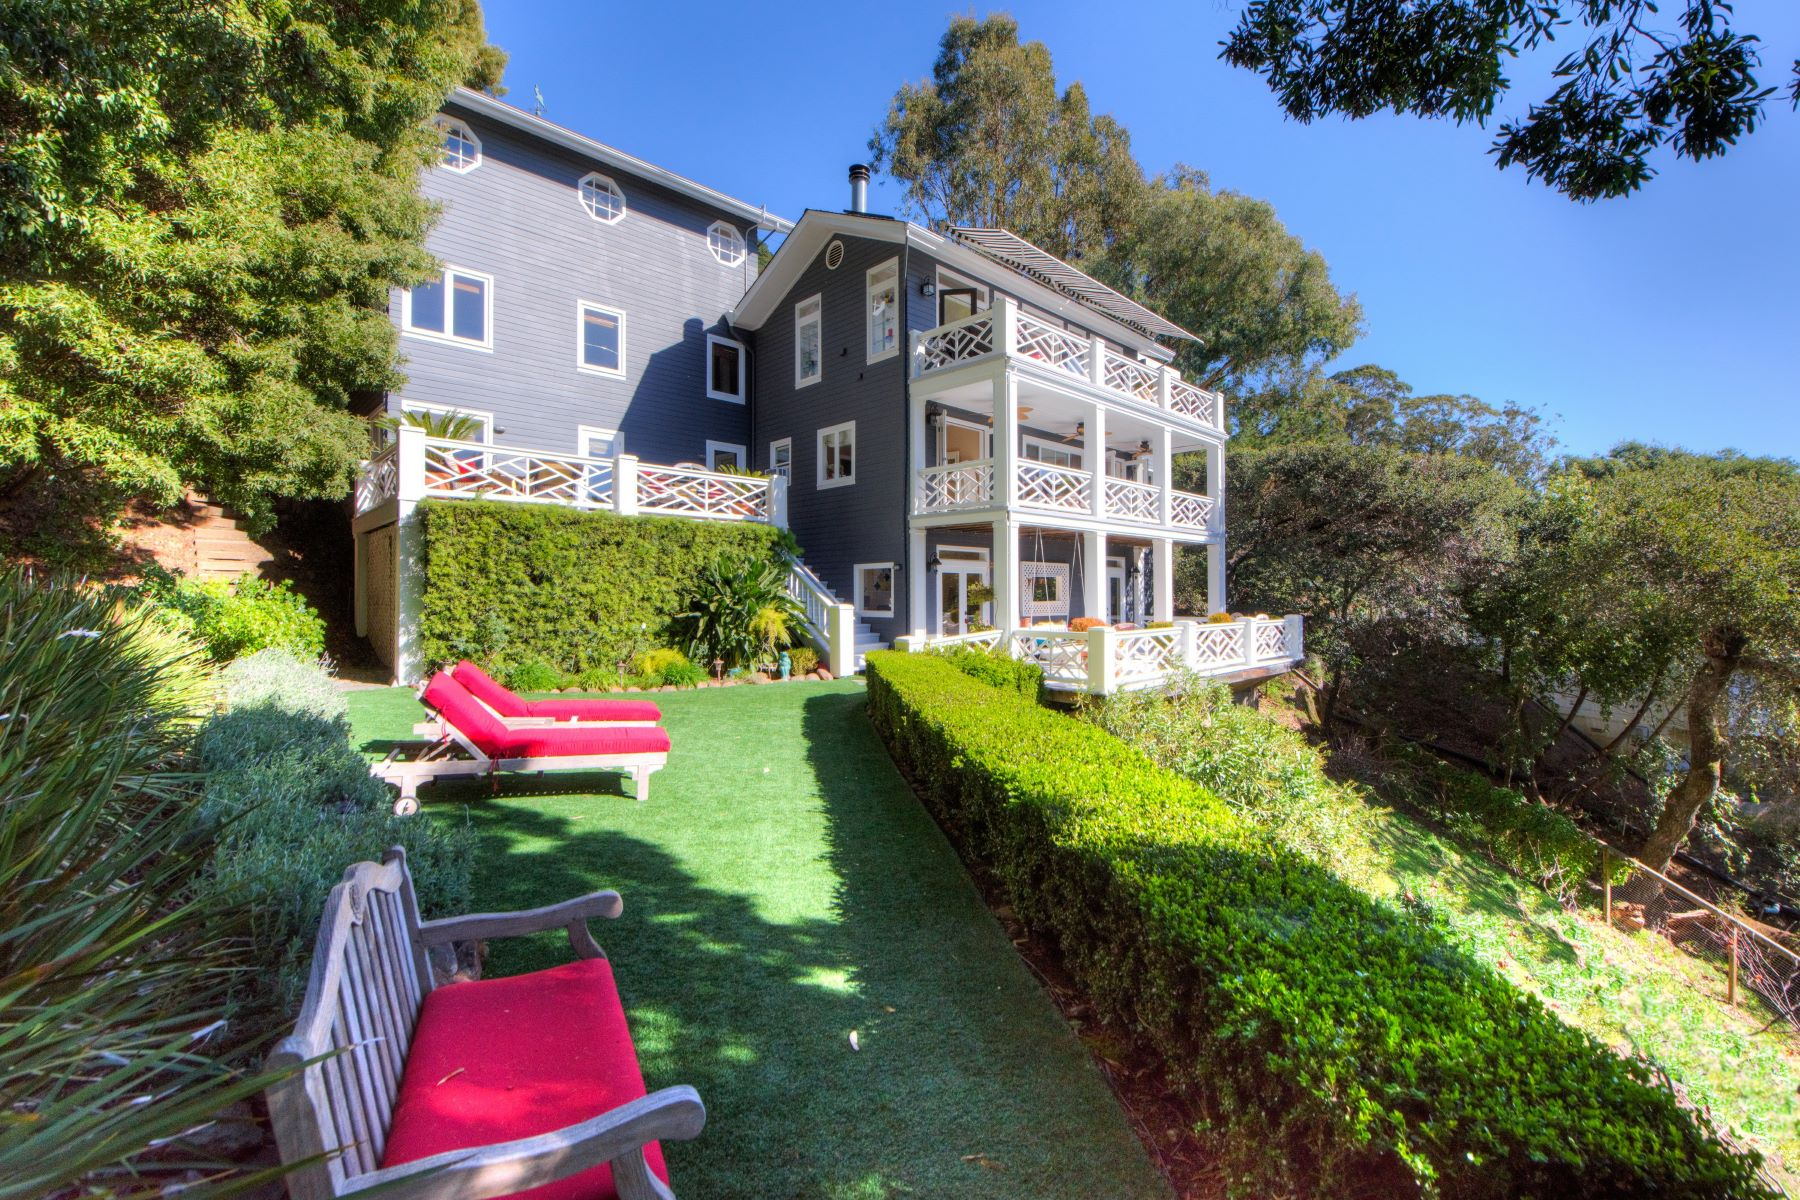 Single Family Home for Sale at California Indoor-Outdoor Lifestyle 365 Margarita Drive San Rafael, California 94901 United States